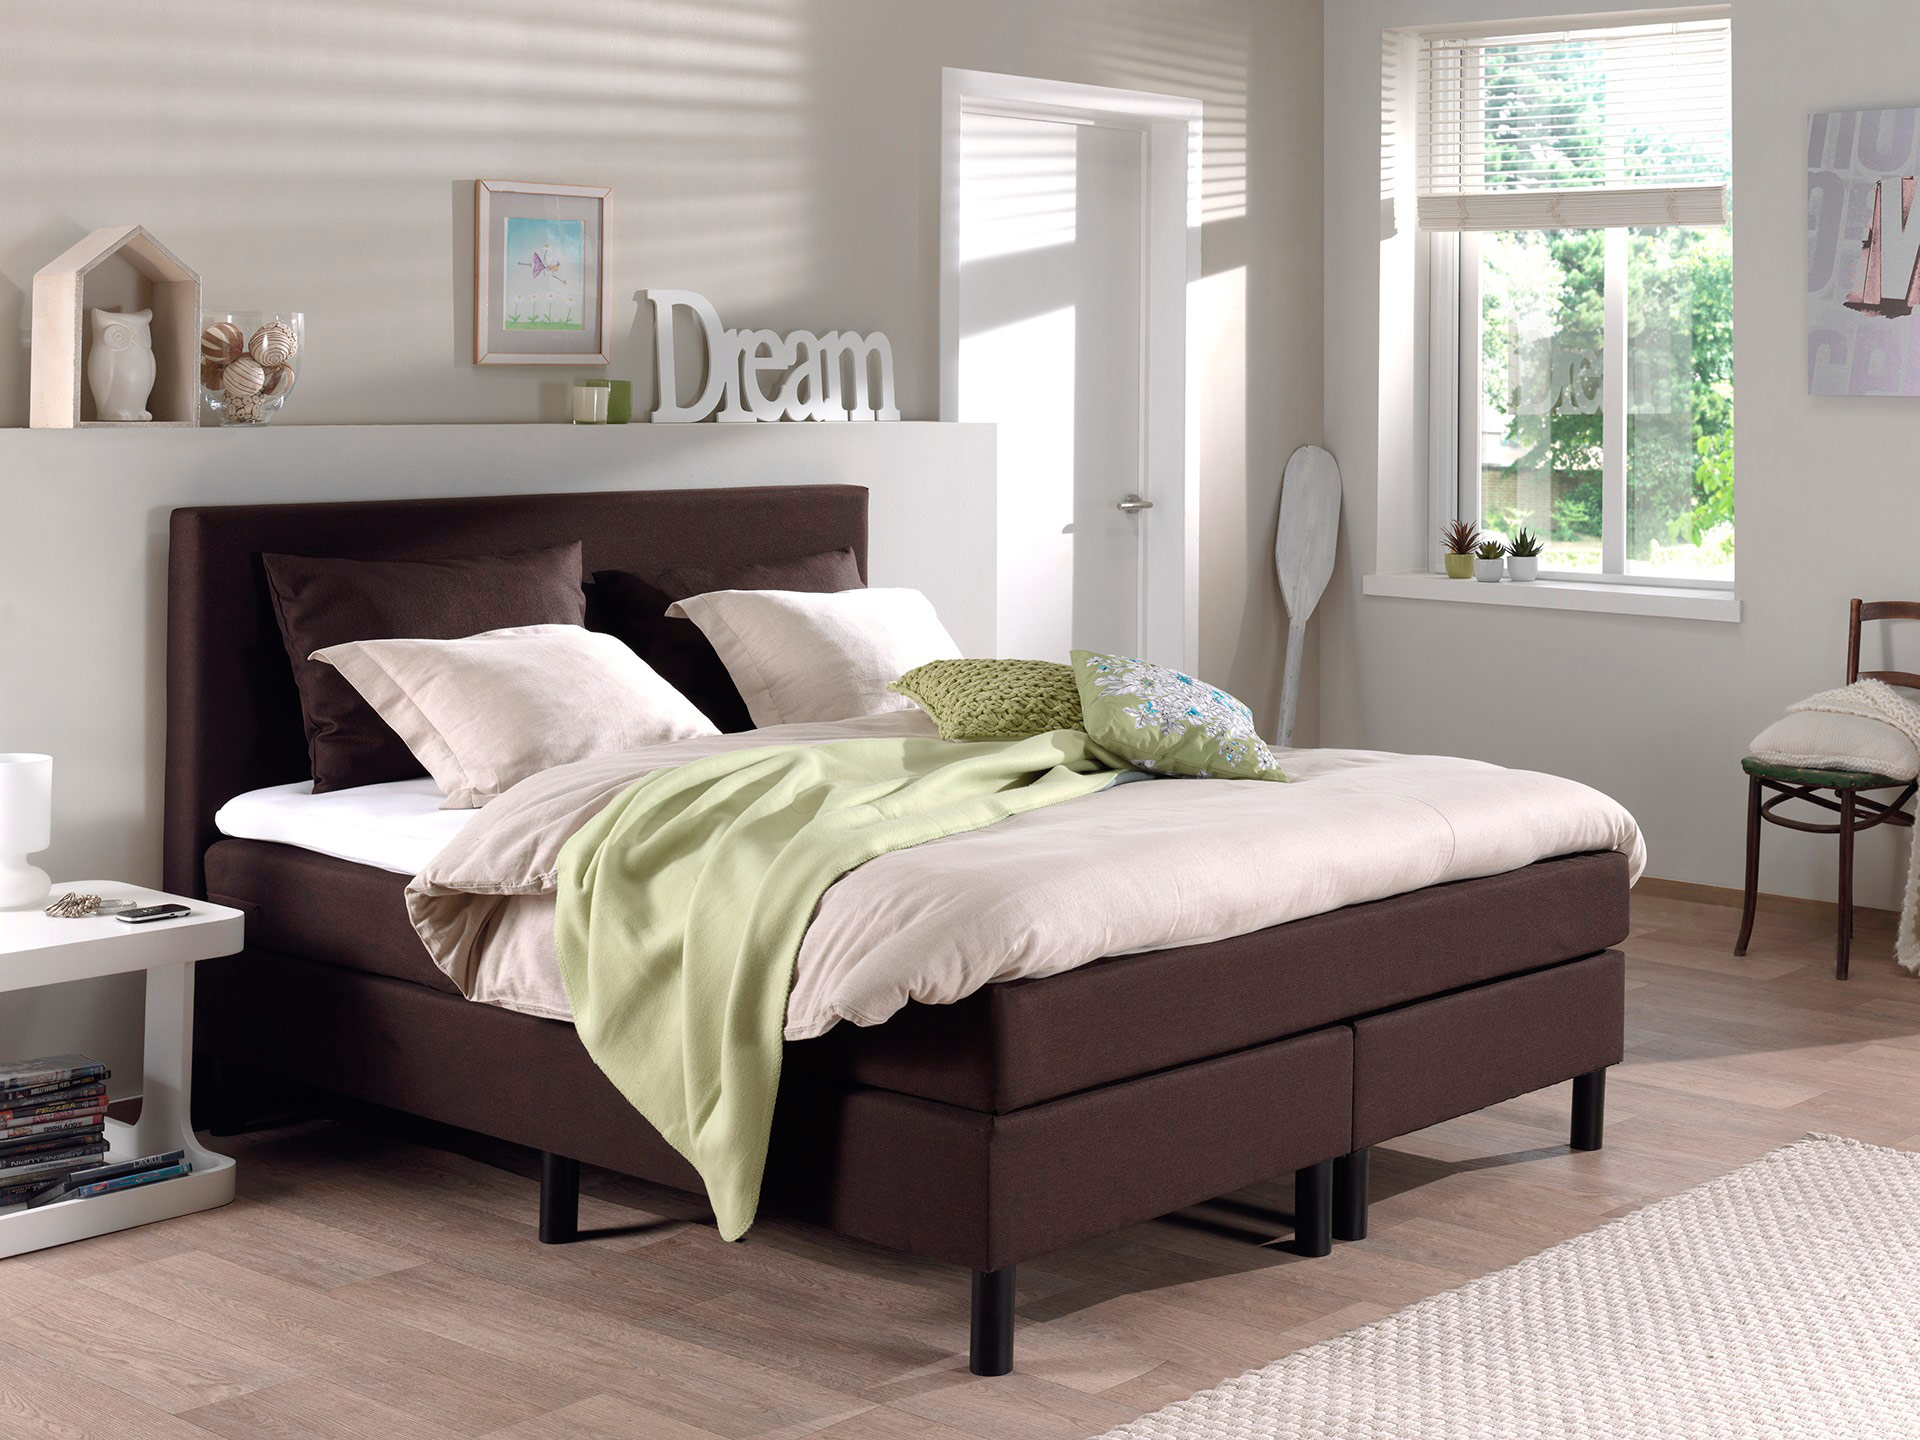 comment bien choisir sa literie le blog matelpro. Black Bedroom Furniture Sets. Home Design Ideas